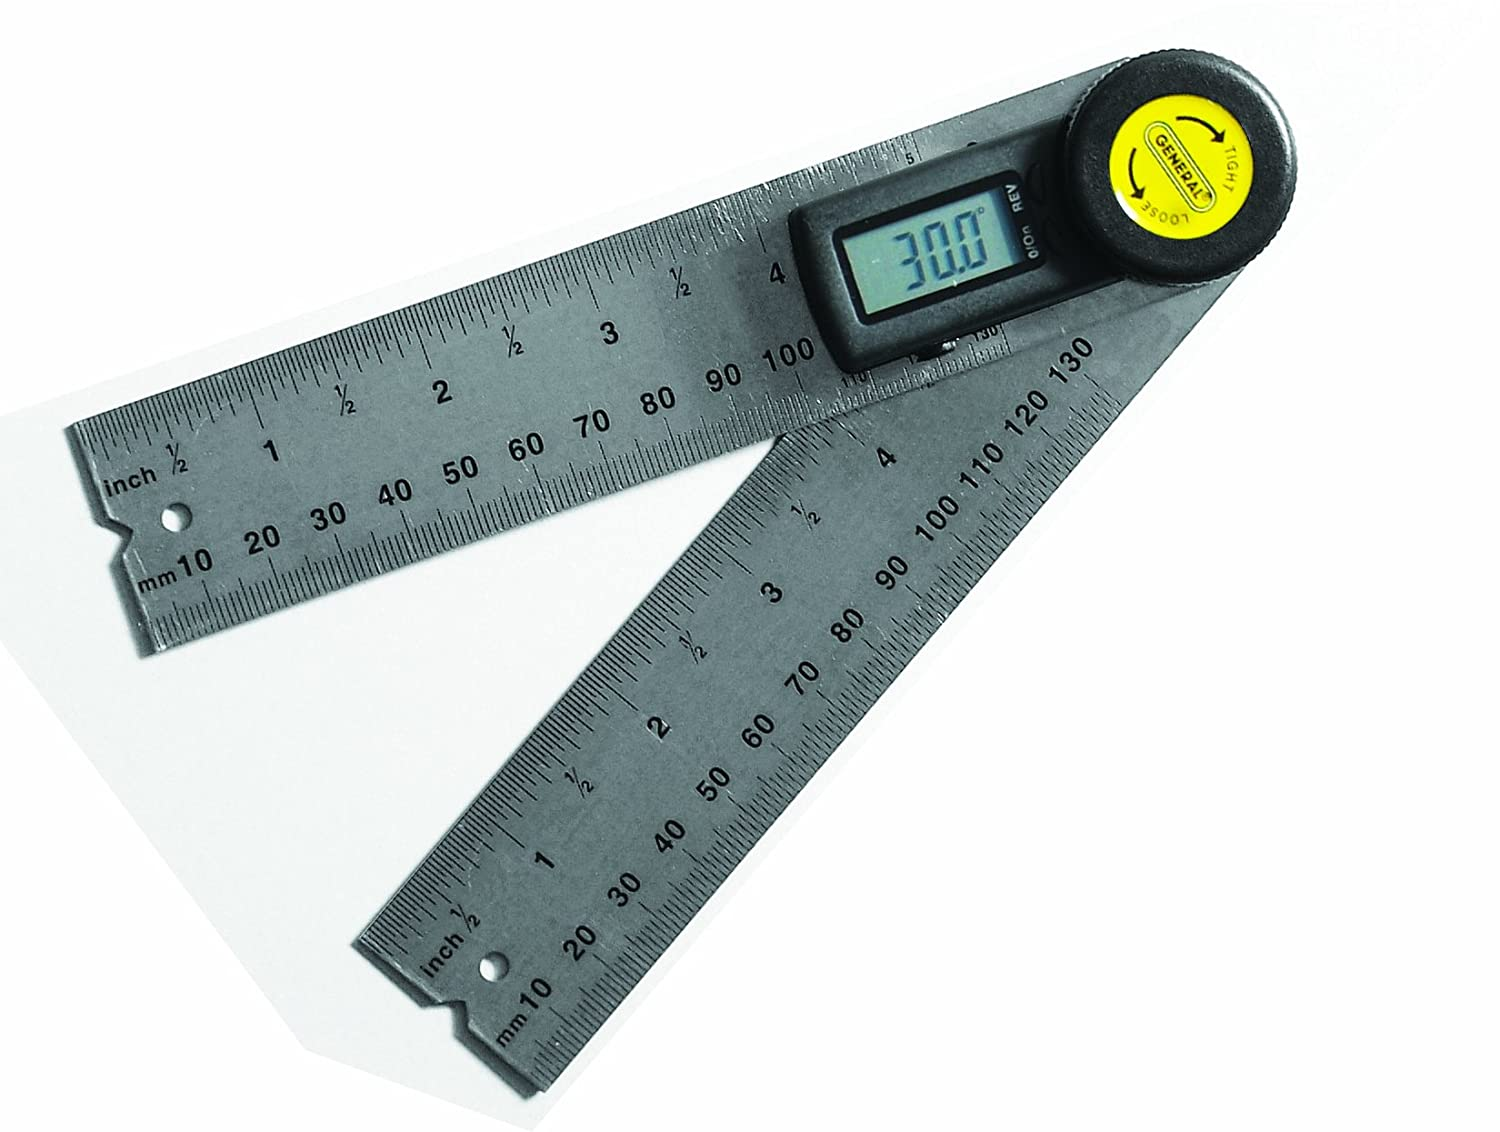 Digital Angle Finder >> General Tools 822 Digital Angle Finder Rule 5 Inch Amazon Com